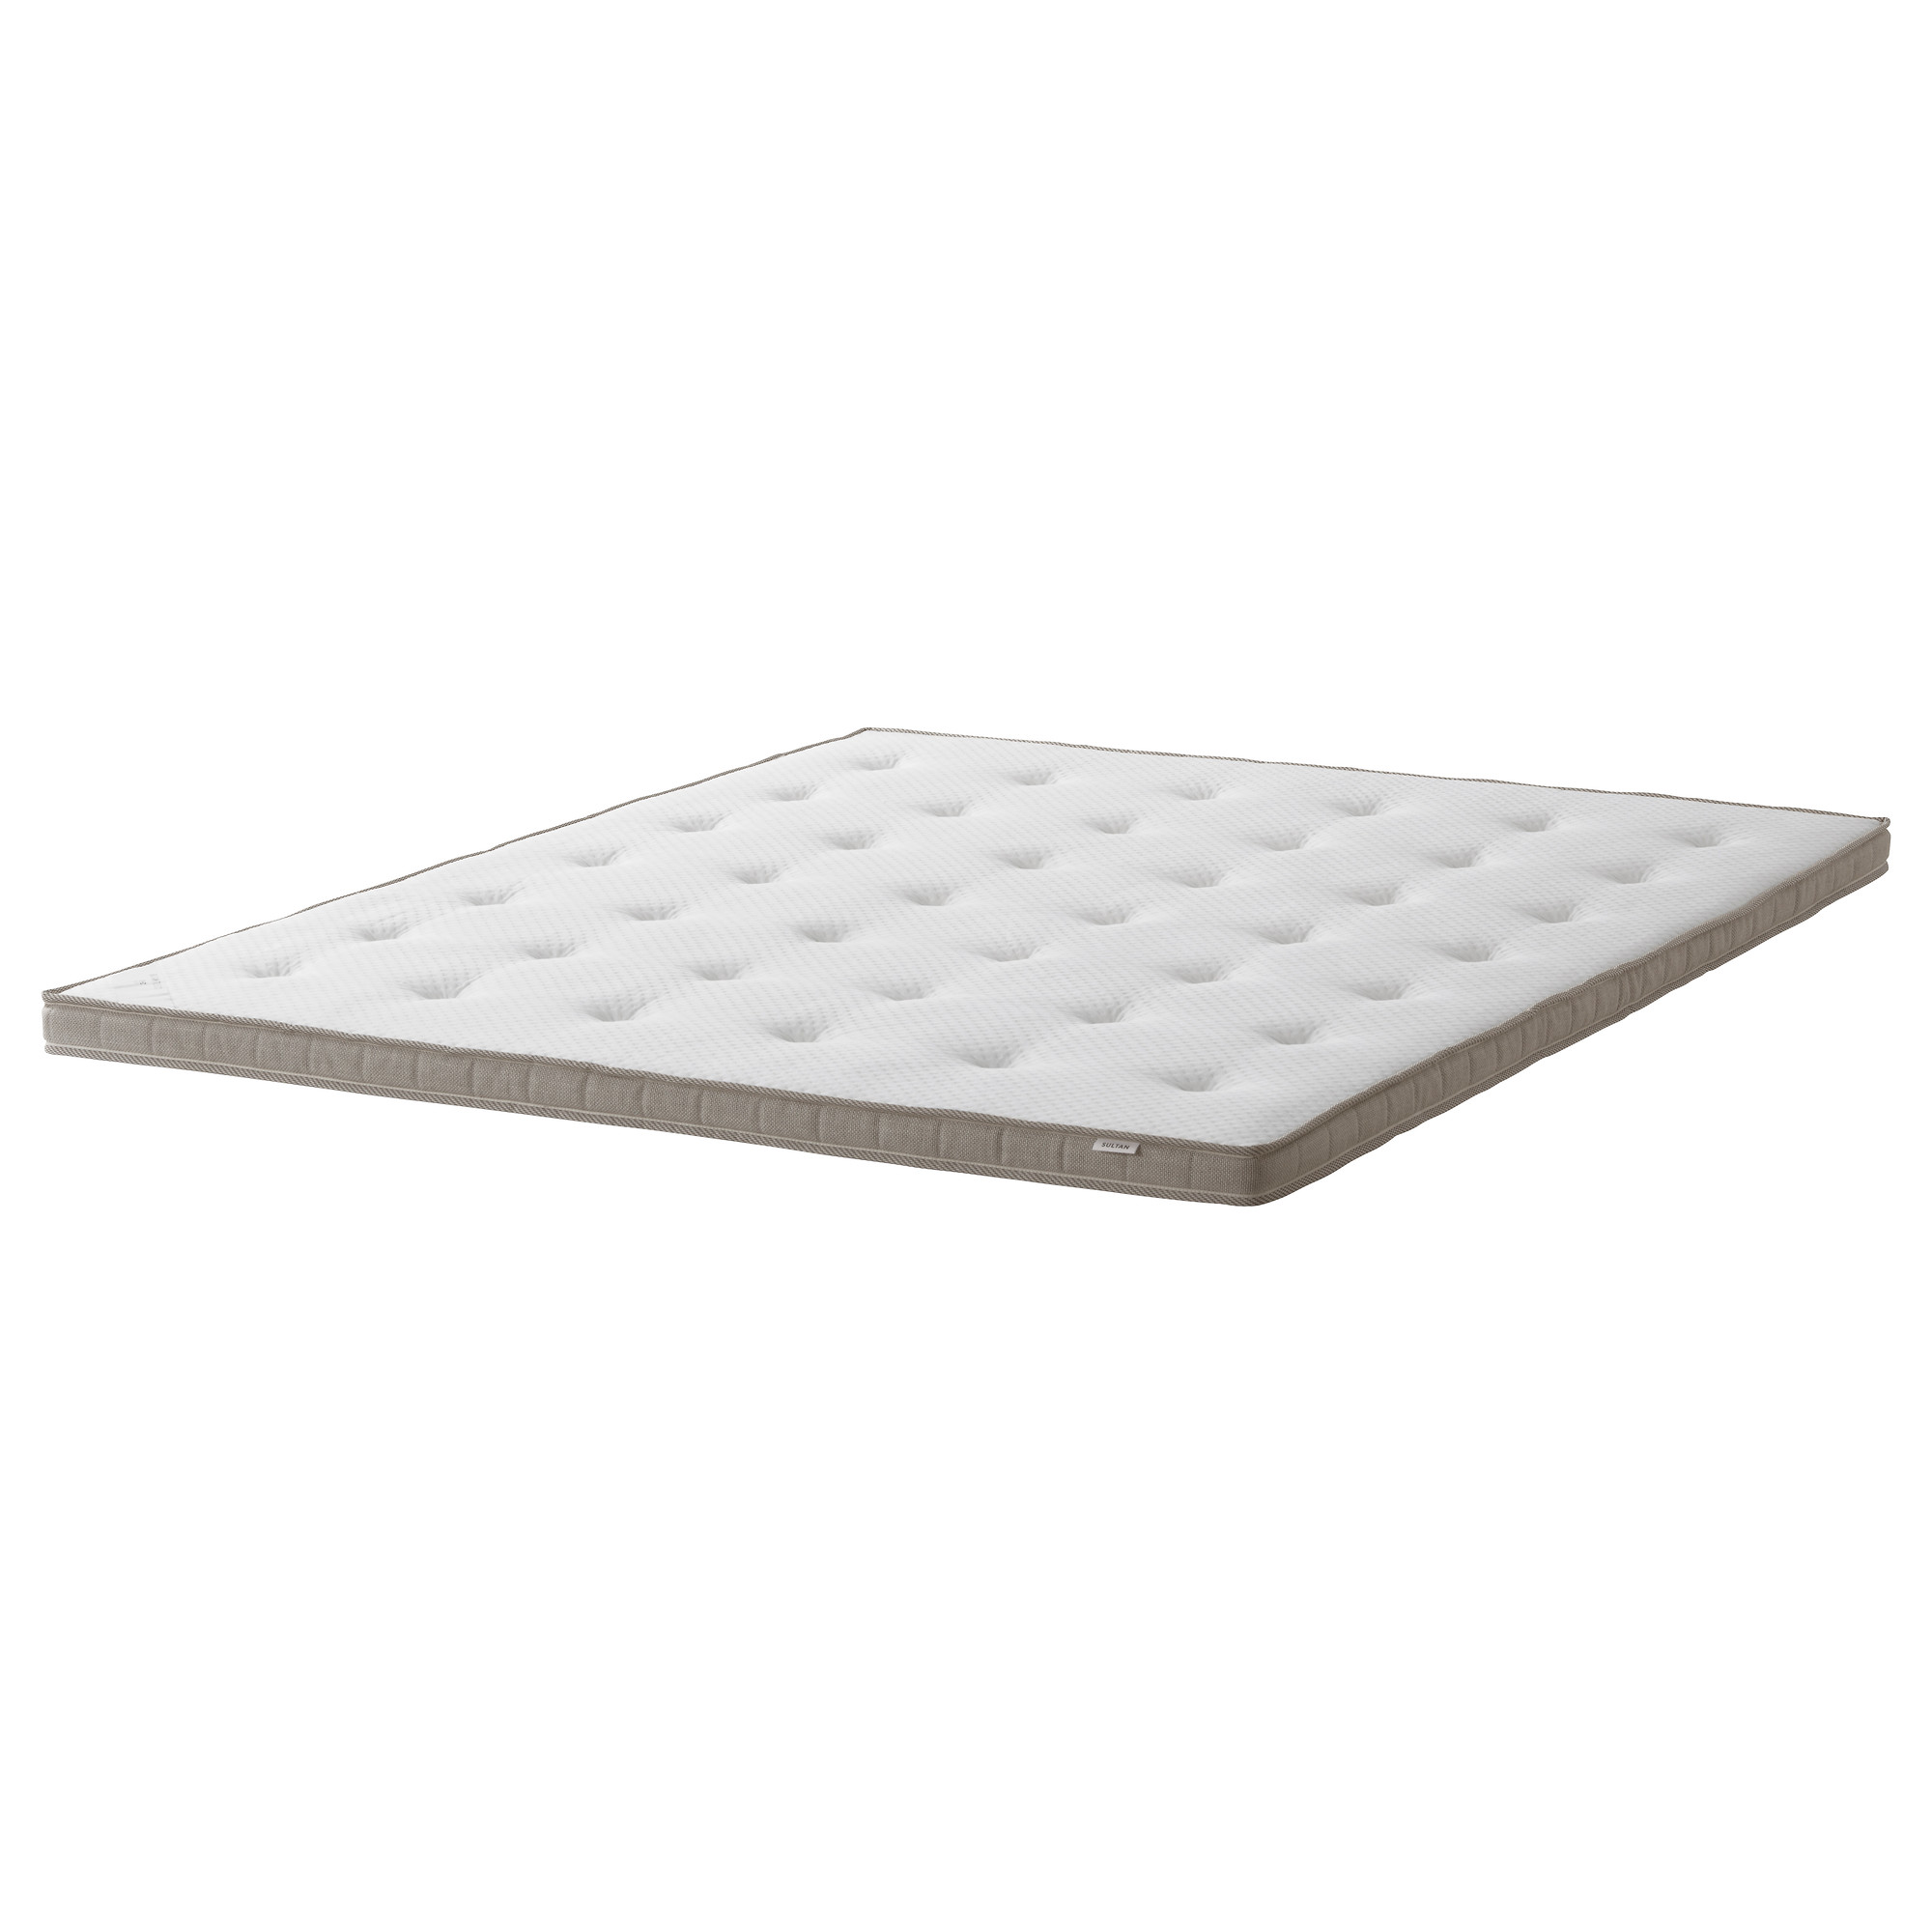 IKEA Mattress Topper Create A Tiny Layer for Ultimate Luxury and